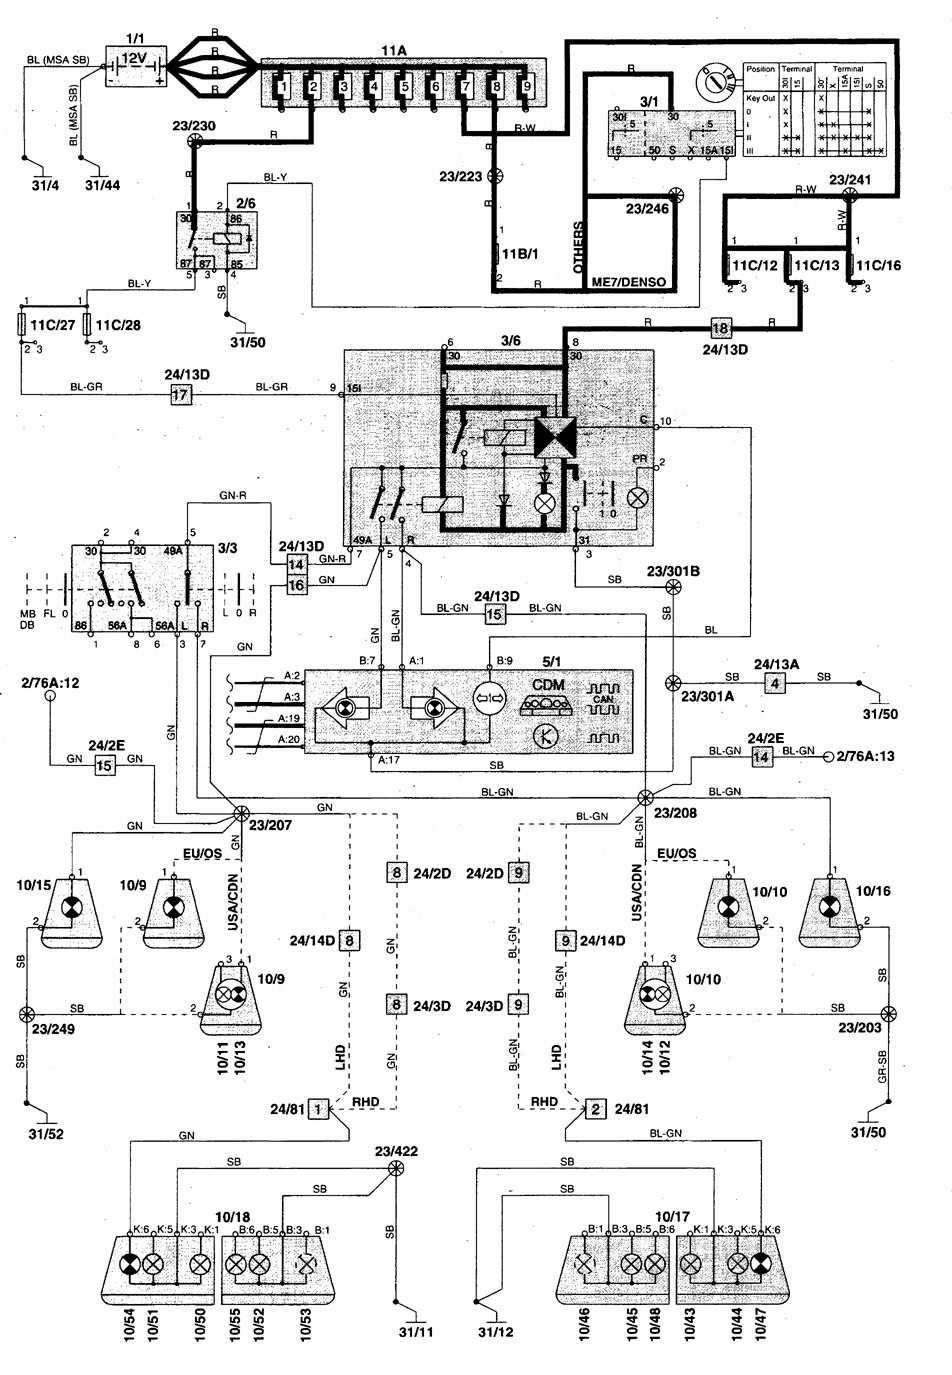 96 Volvo 850 Engine Diagram Wiring Library 1999 S70 V70 Schemes 1998